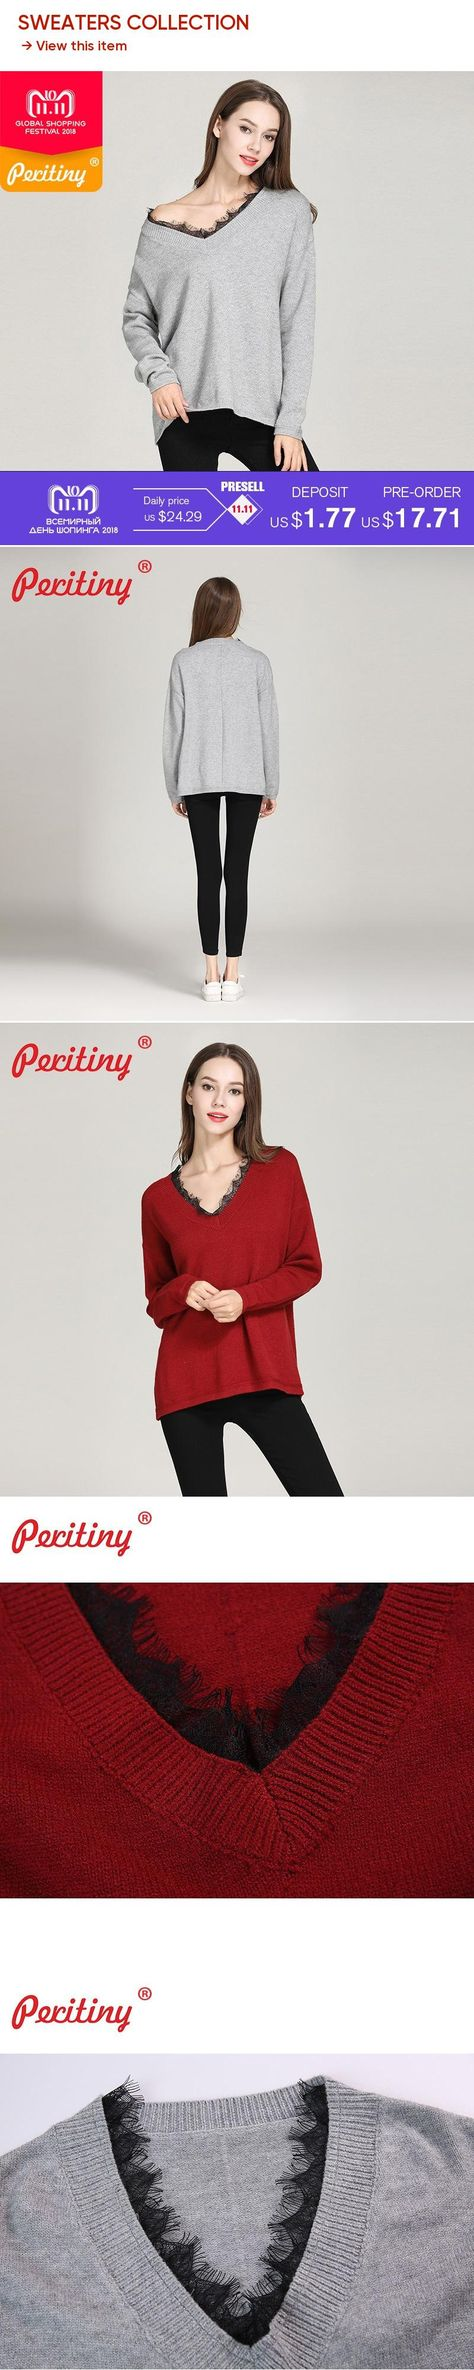 Peritiny Korean Fashion Swater Female Knitted Angora Jumper Sexy V-Neck  Maglioni Donna Clothes Women 5168041f55bb